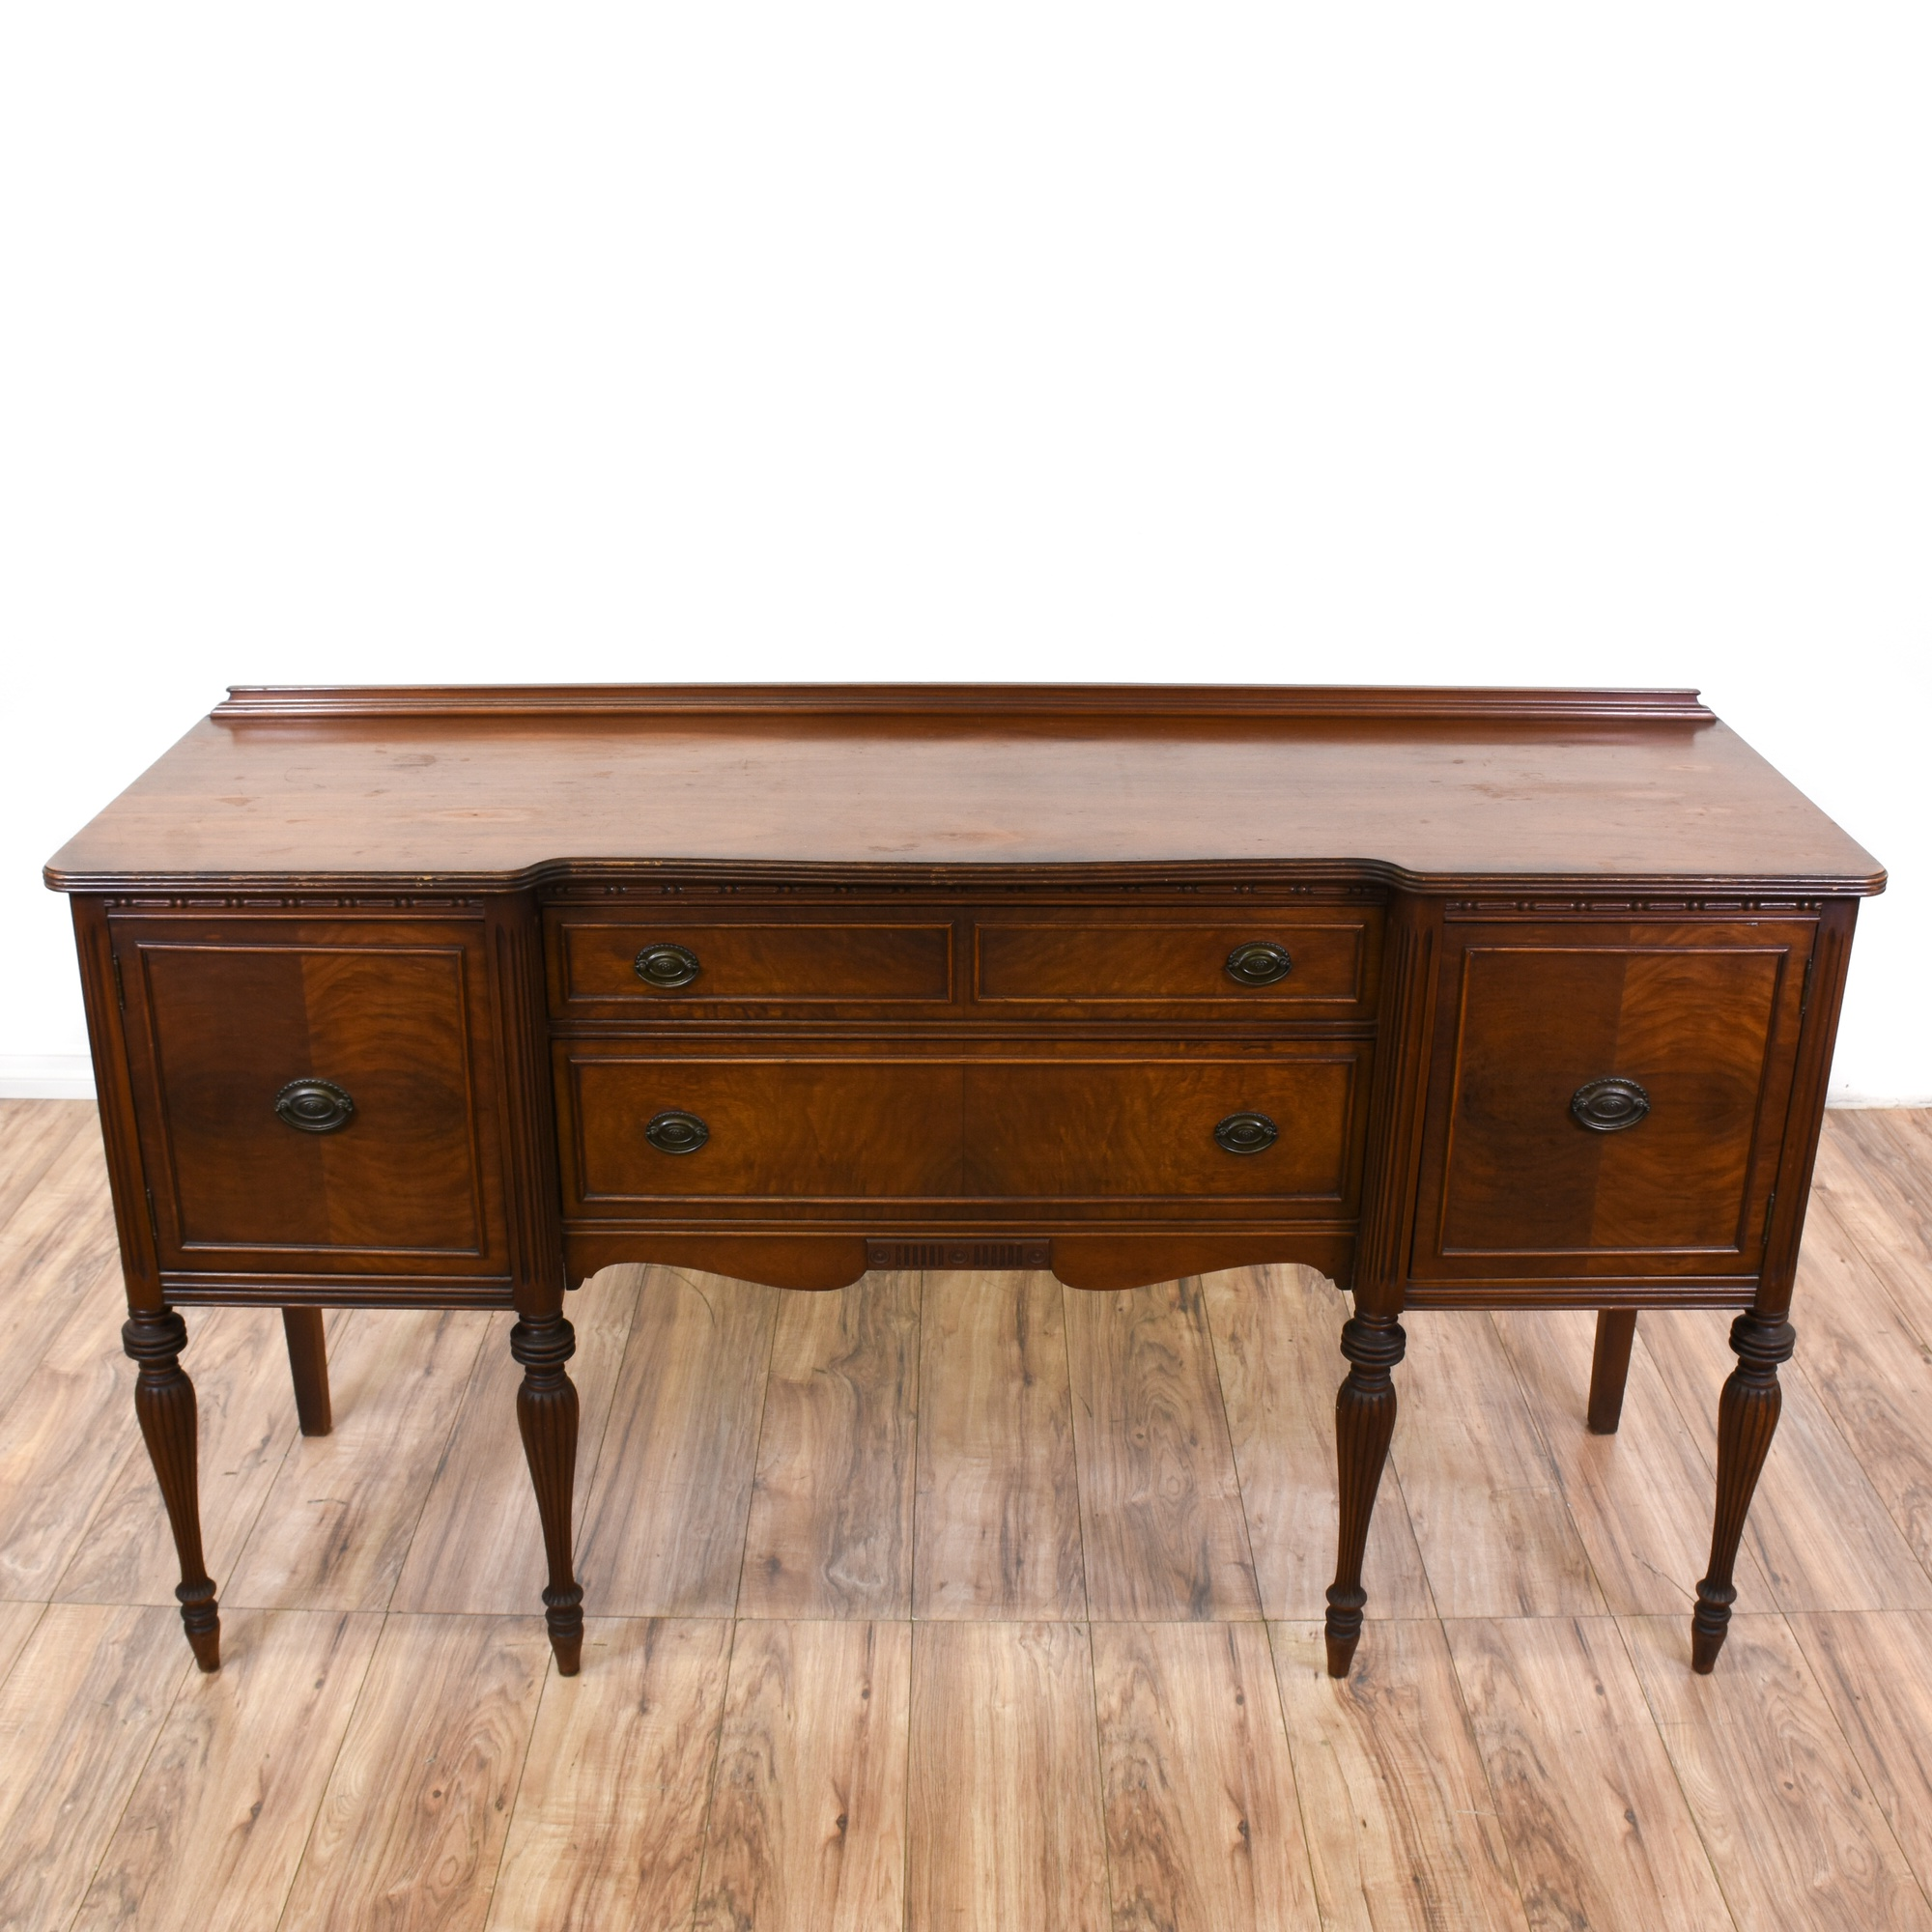 Neoclassical Antique 3 Drawer Sideboard Buffet Loveseat Vintage Furniture San Diego Amp Los Angeles